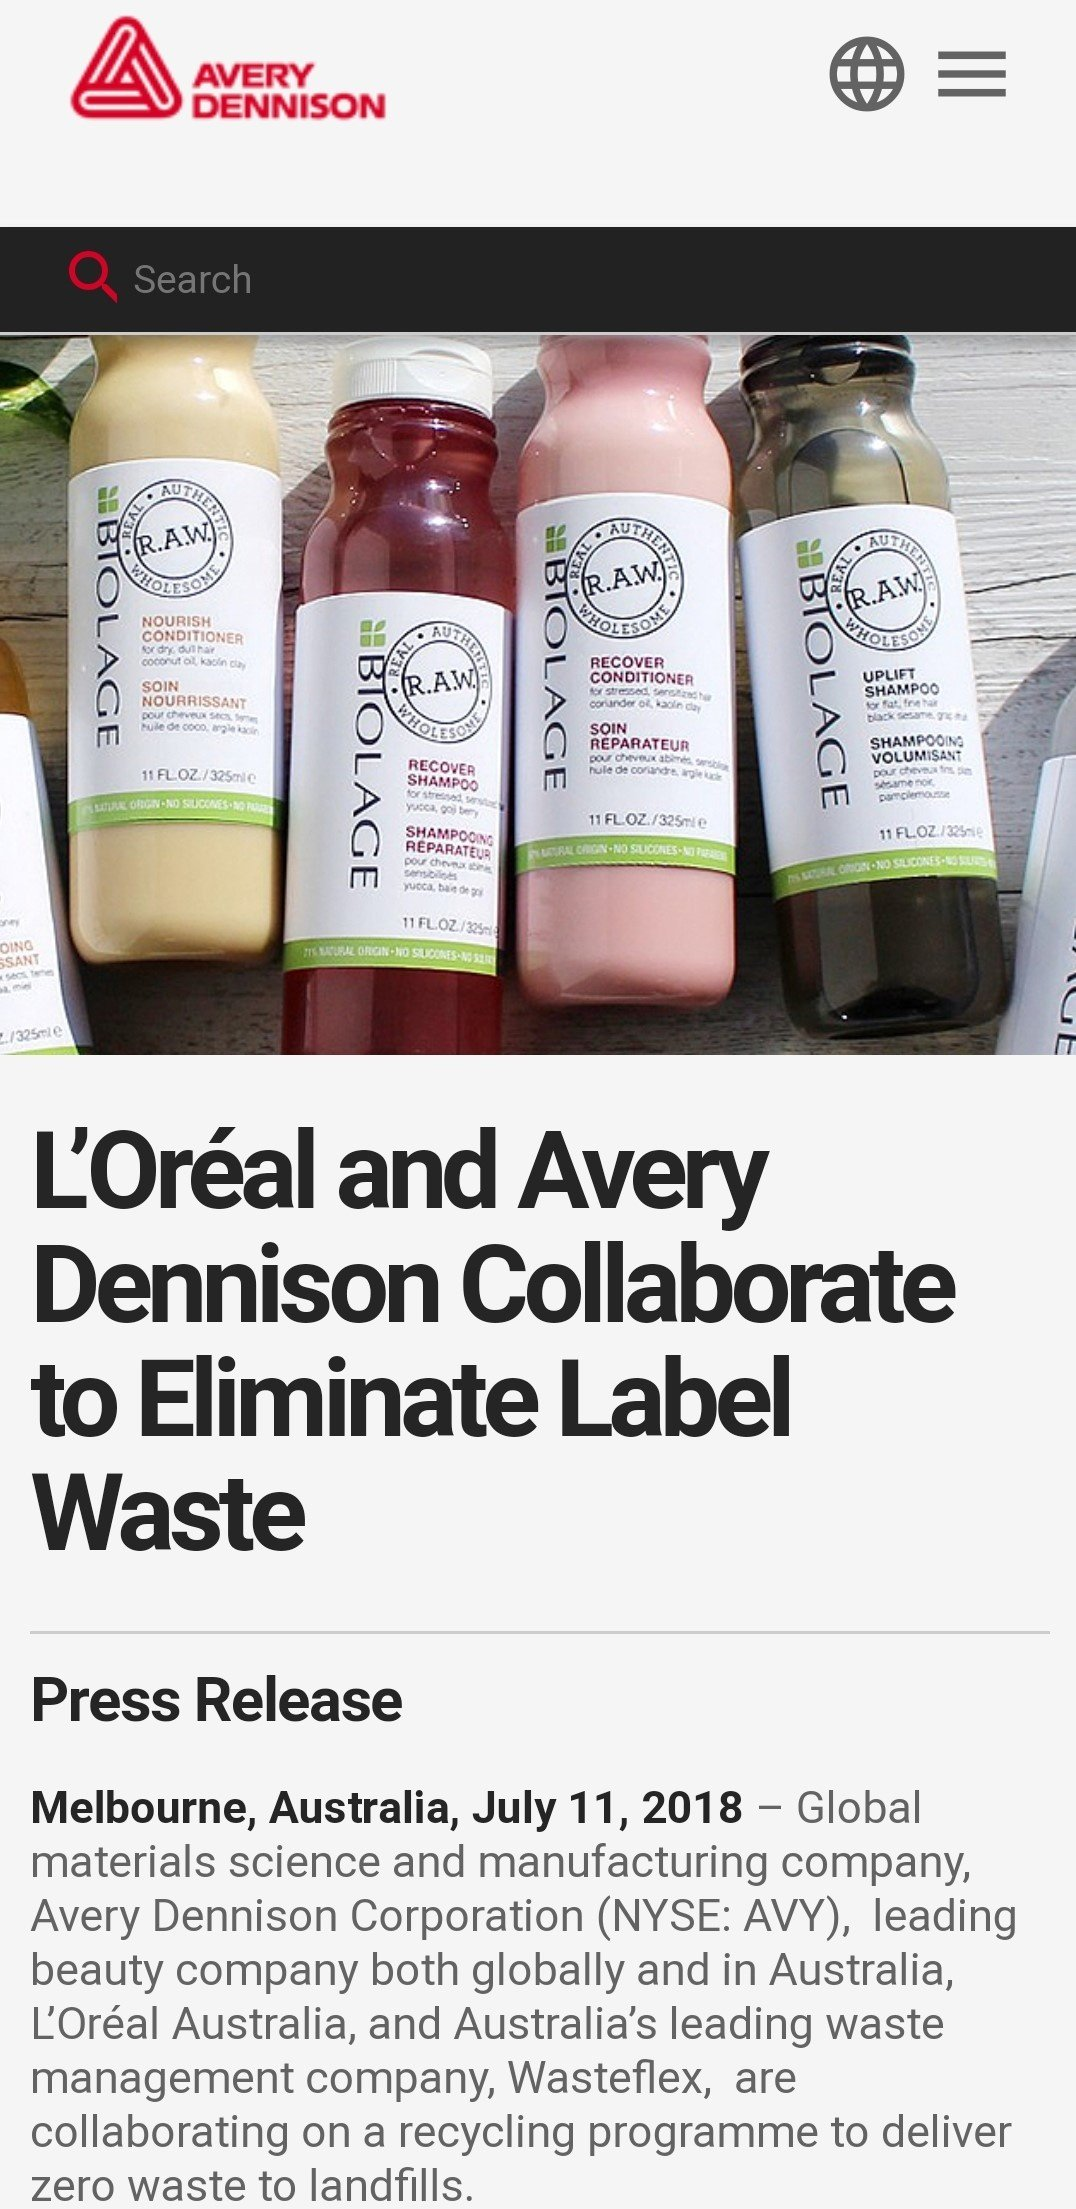 Avery Dennison takes the initiative to make a real change